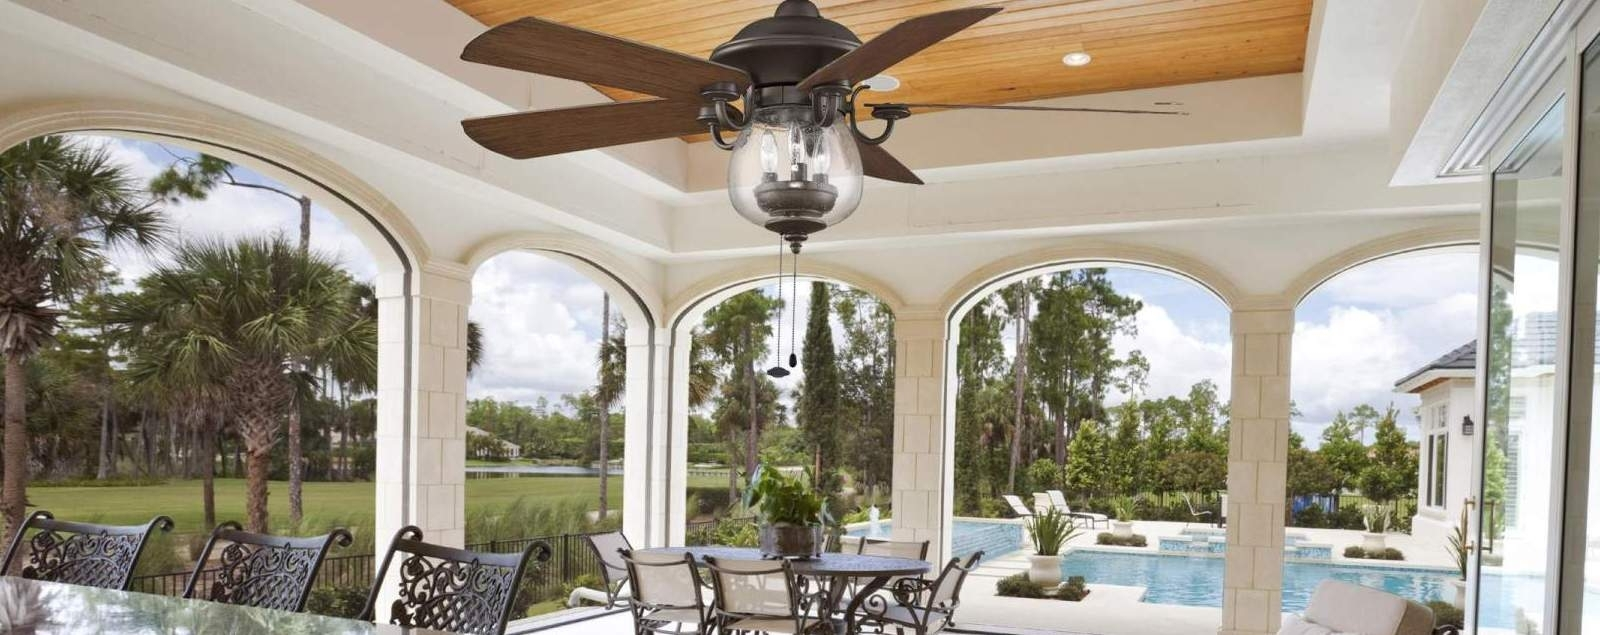 Outdoor Ceiling Fans – Shop Wet, Dry, And Damp Rated Outdoor Fans Within 2019 Outdoor Ceiling Fan Under Deck (View 15 of 20)